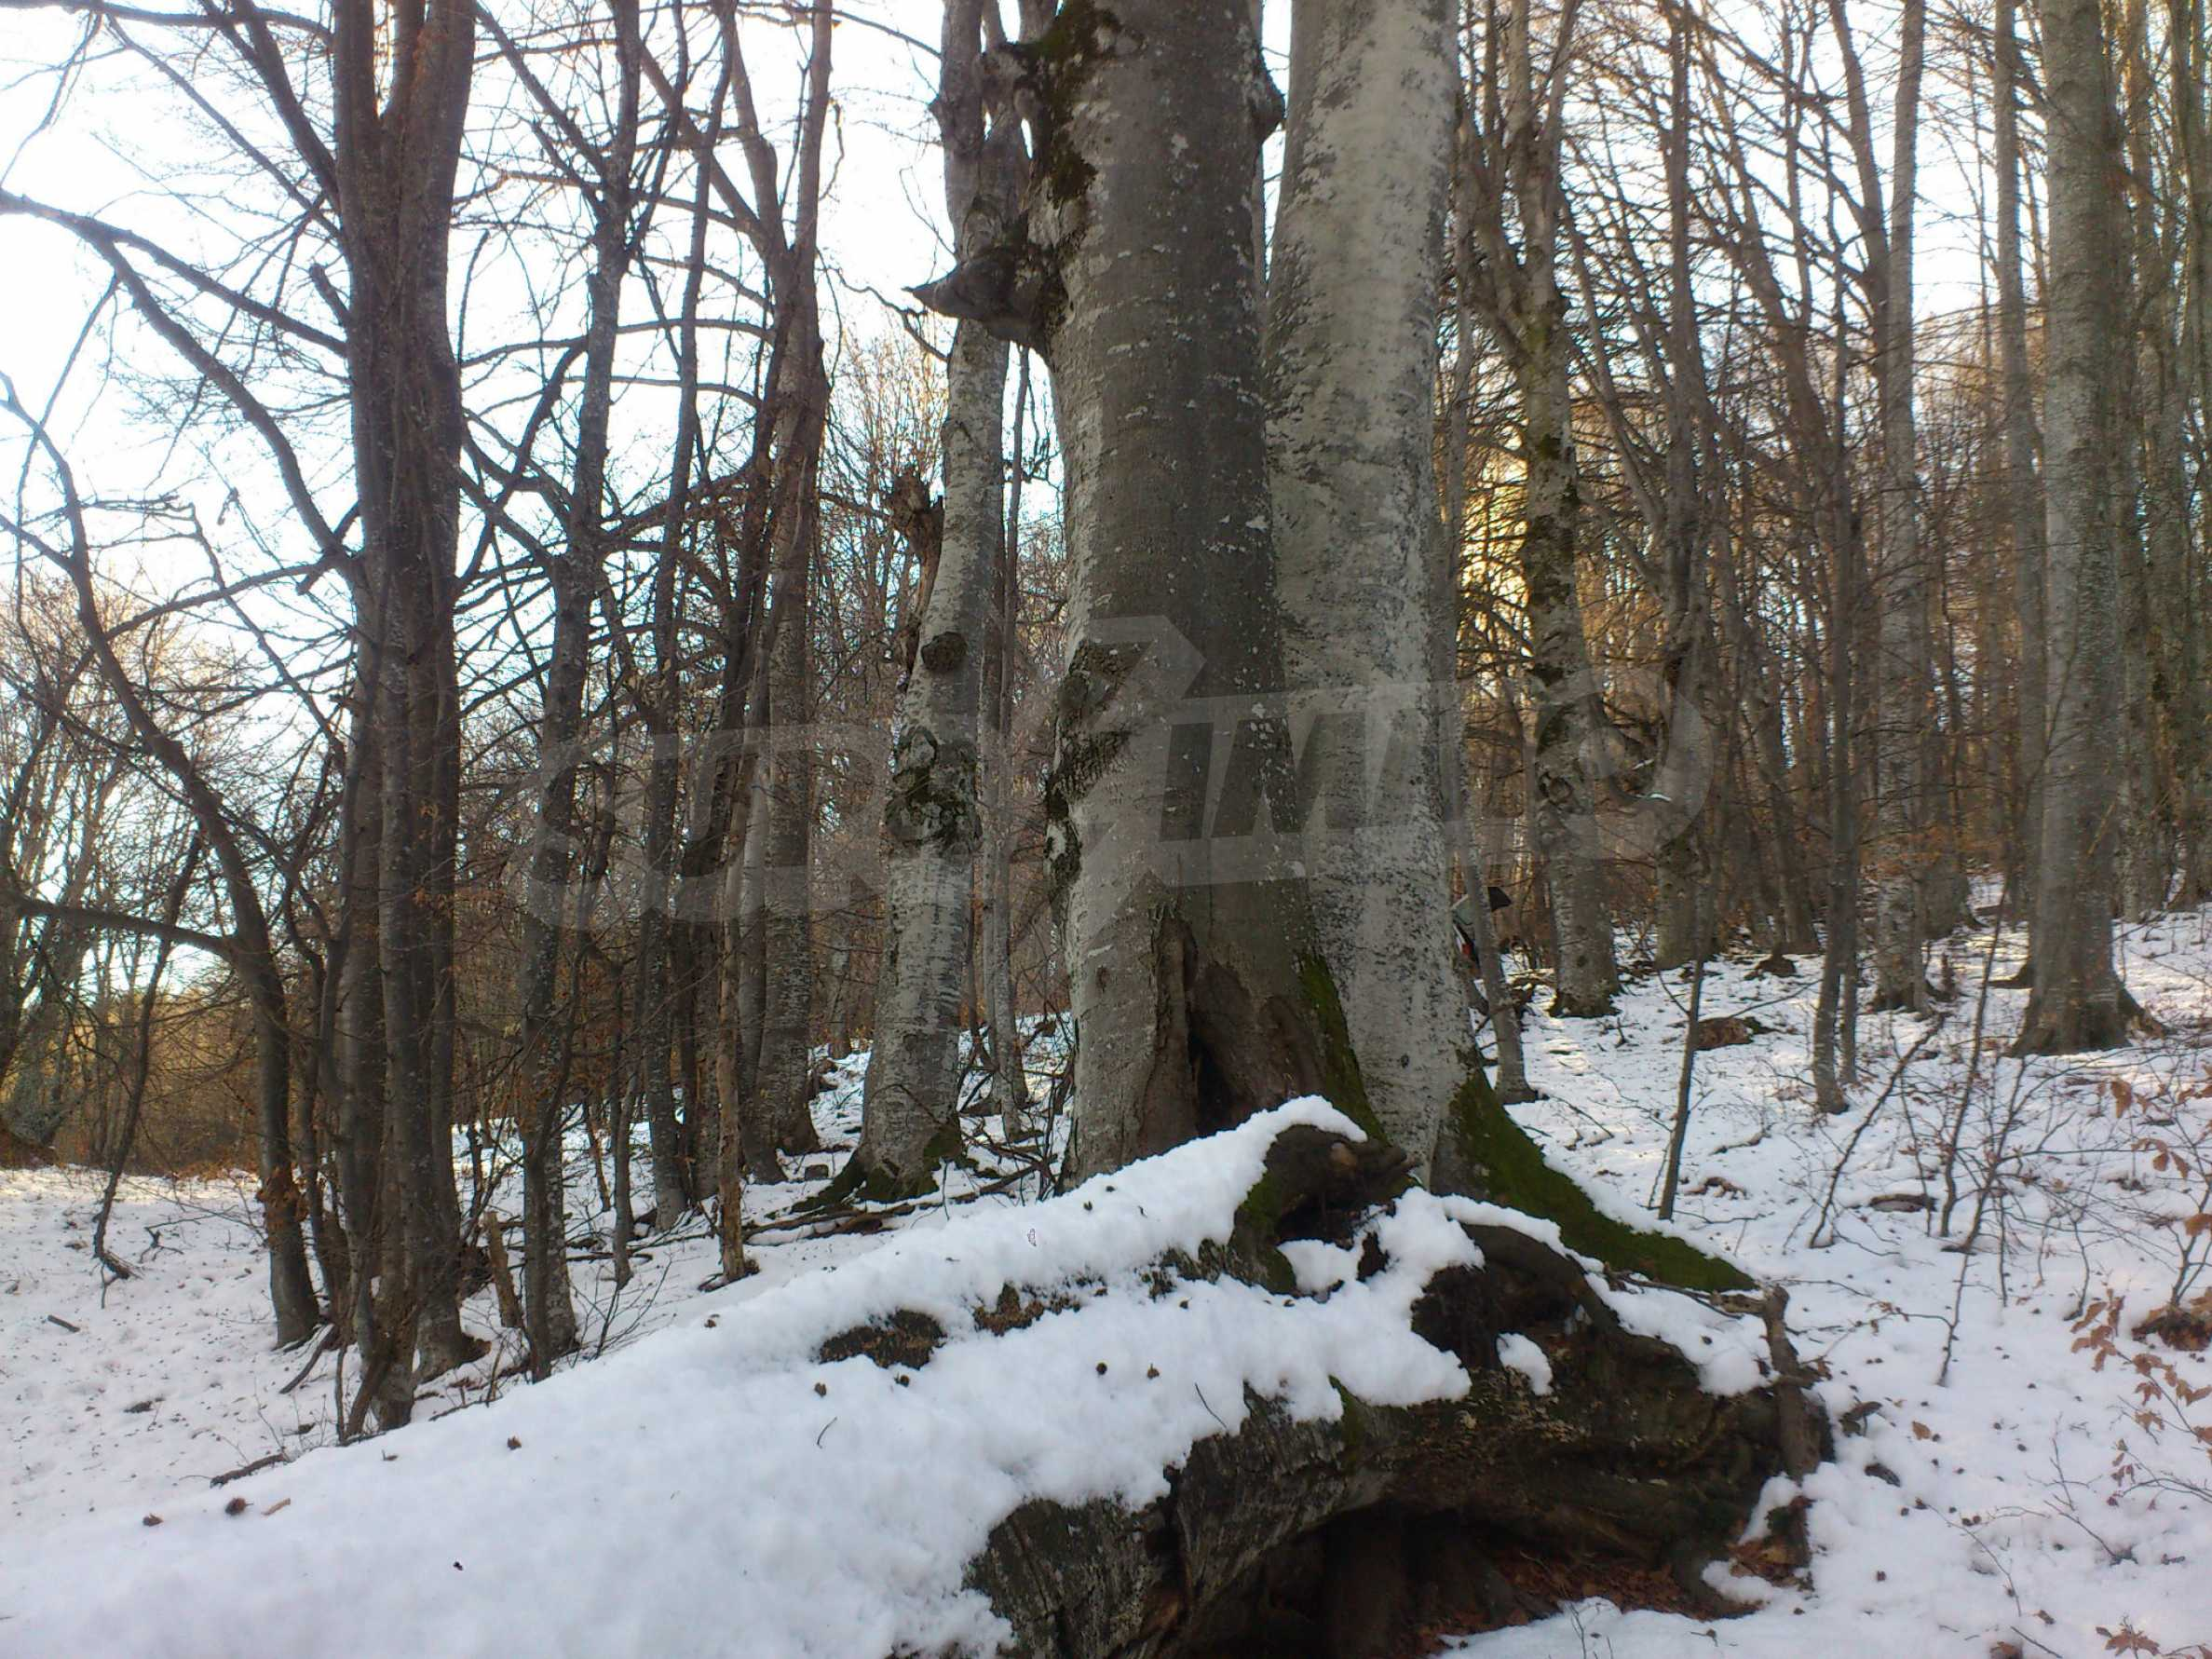 Deciduous forest near Aprilci 17